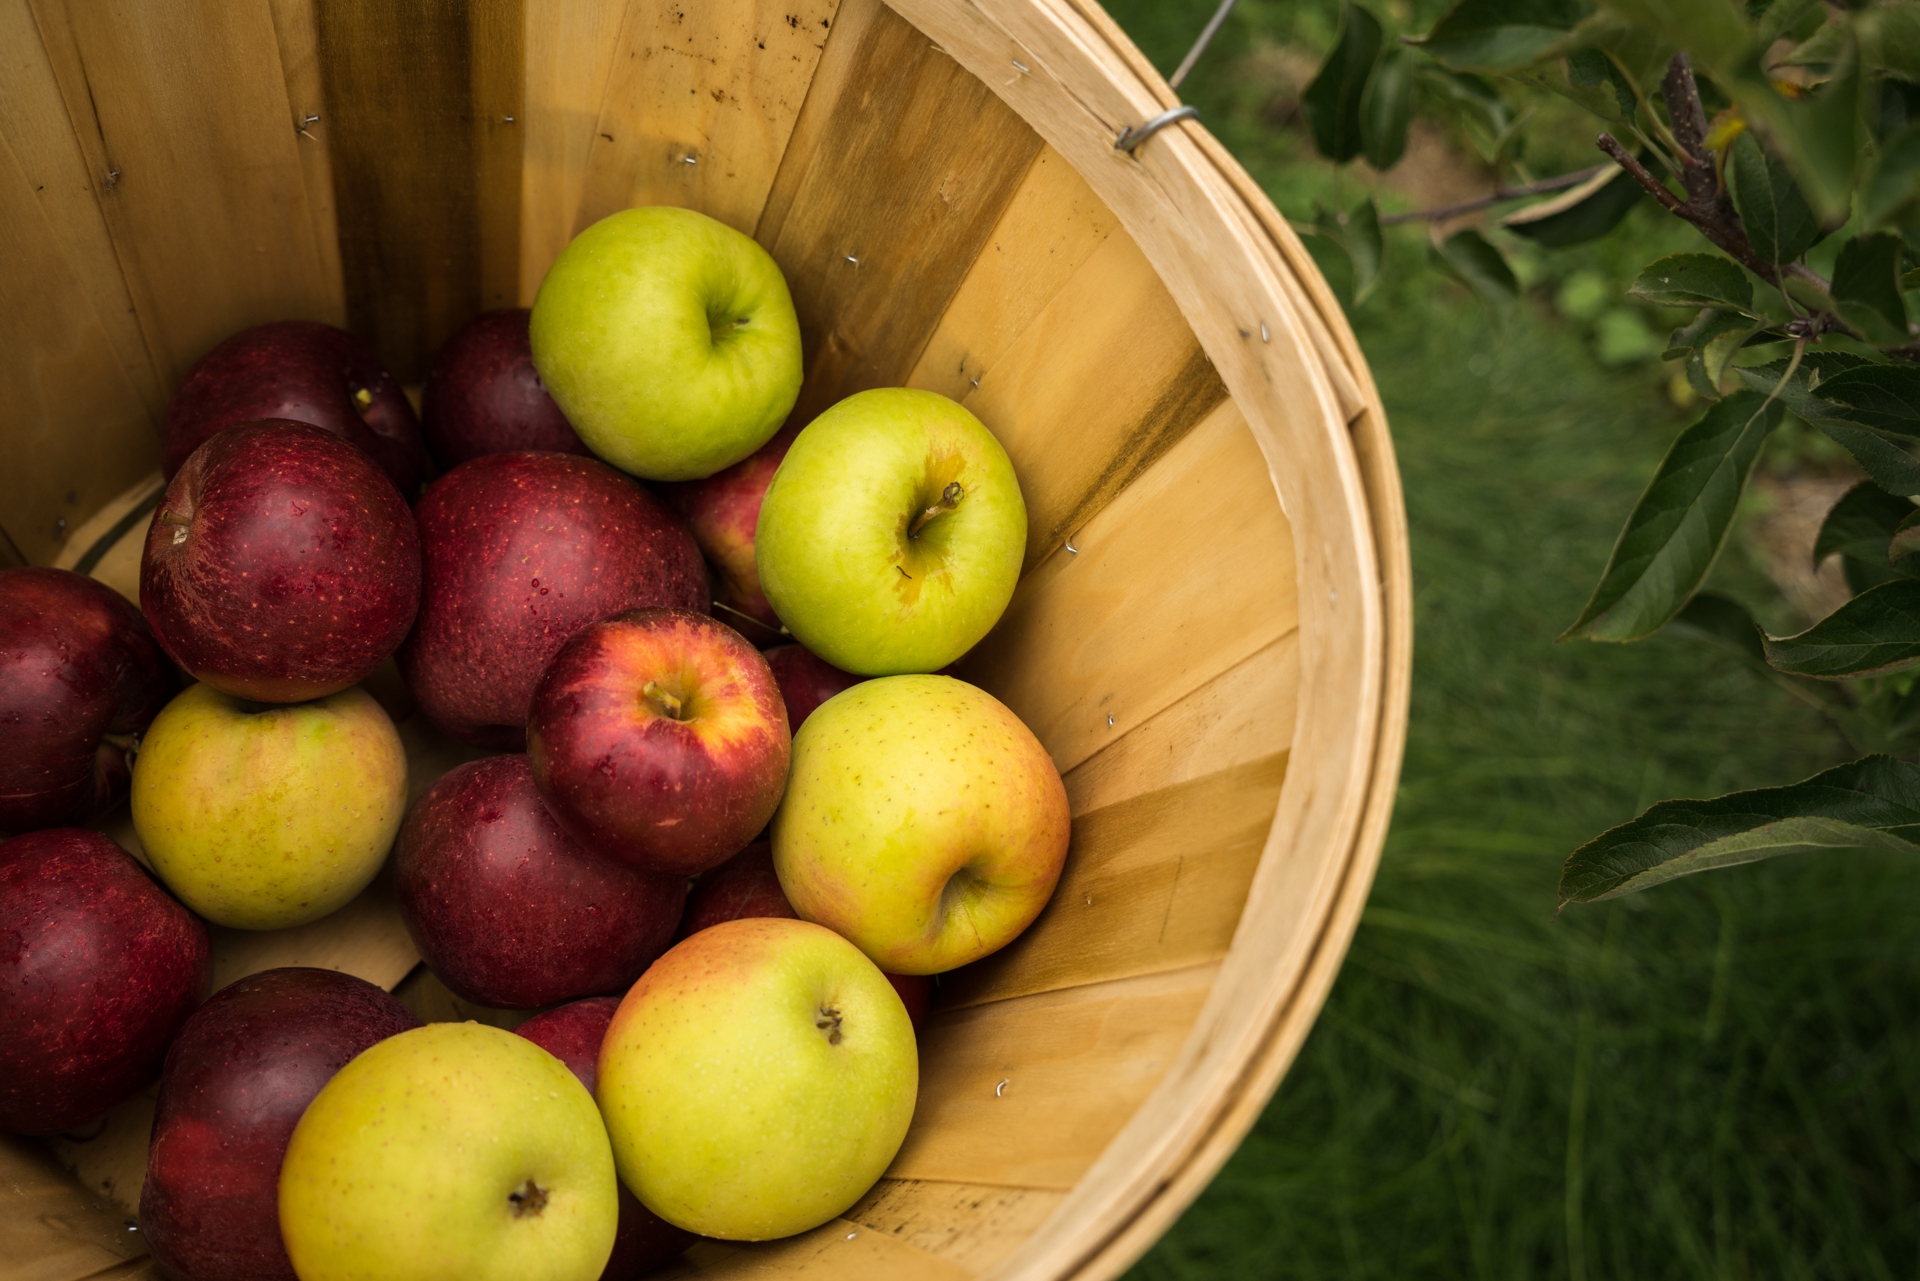 Apple picking with 18 family members in Michigan!